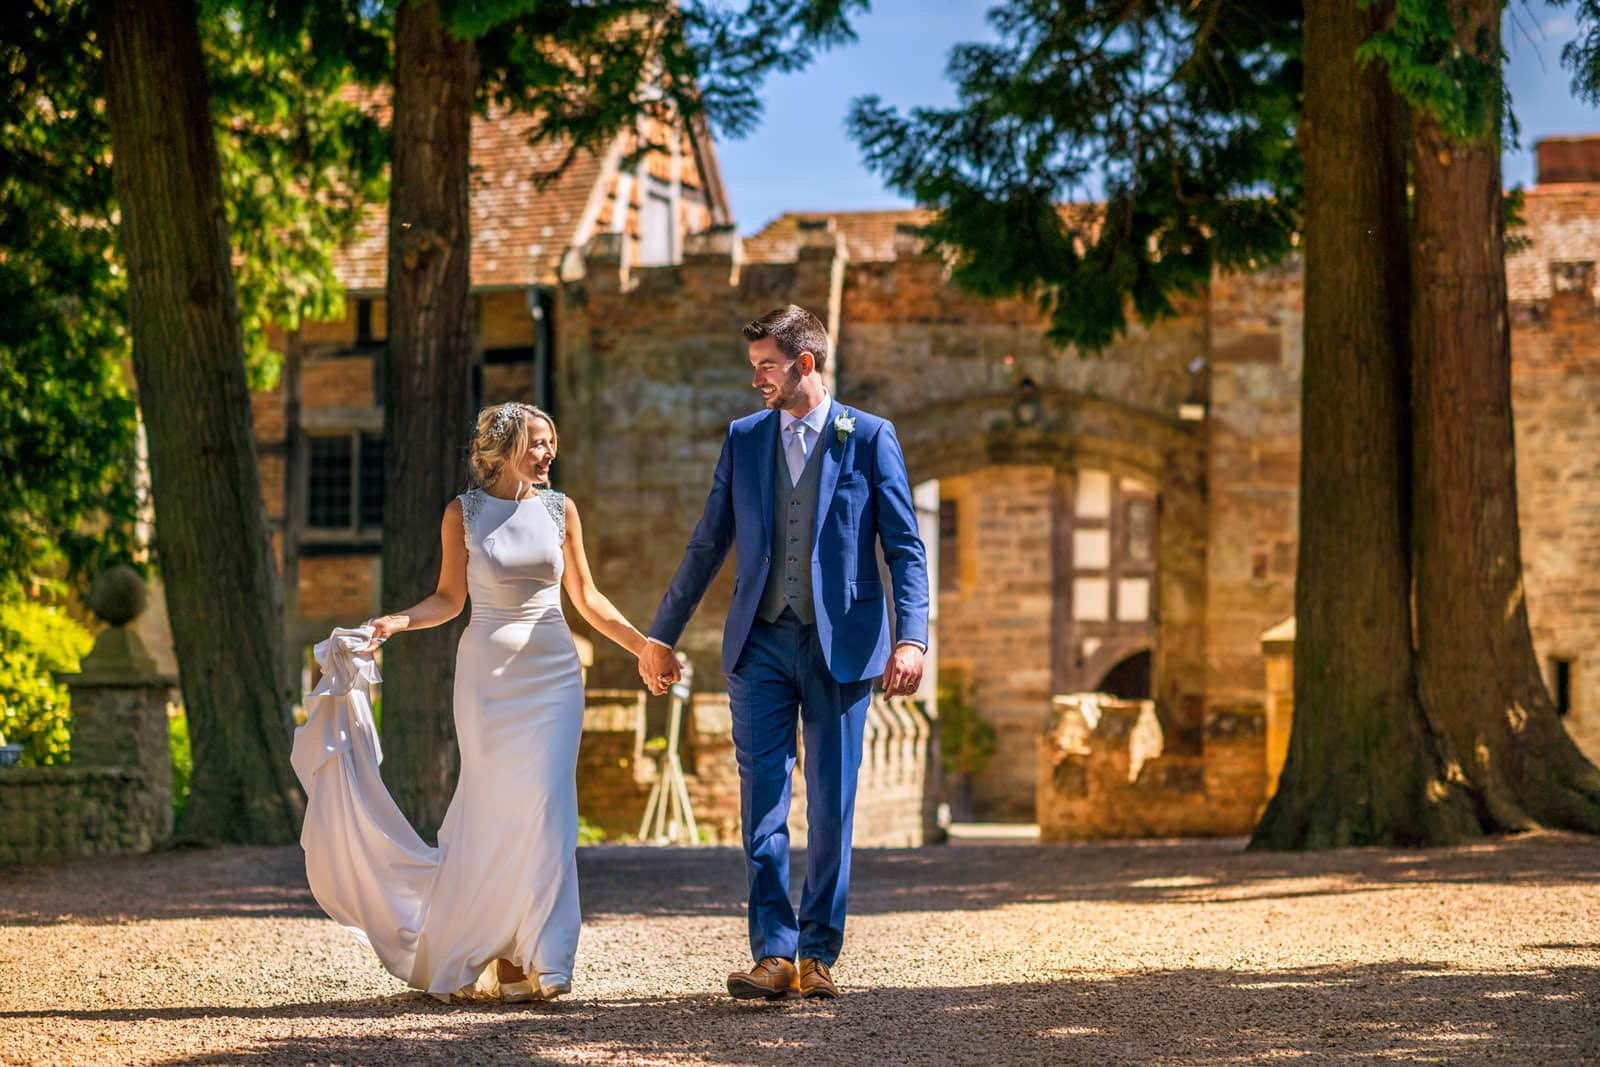 Bride and groom take a walk together